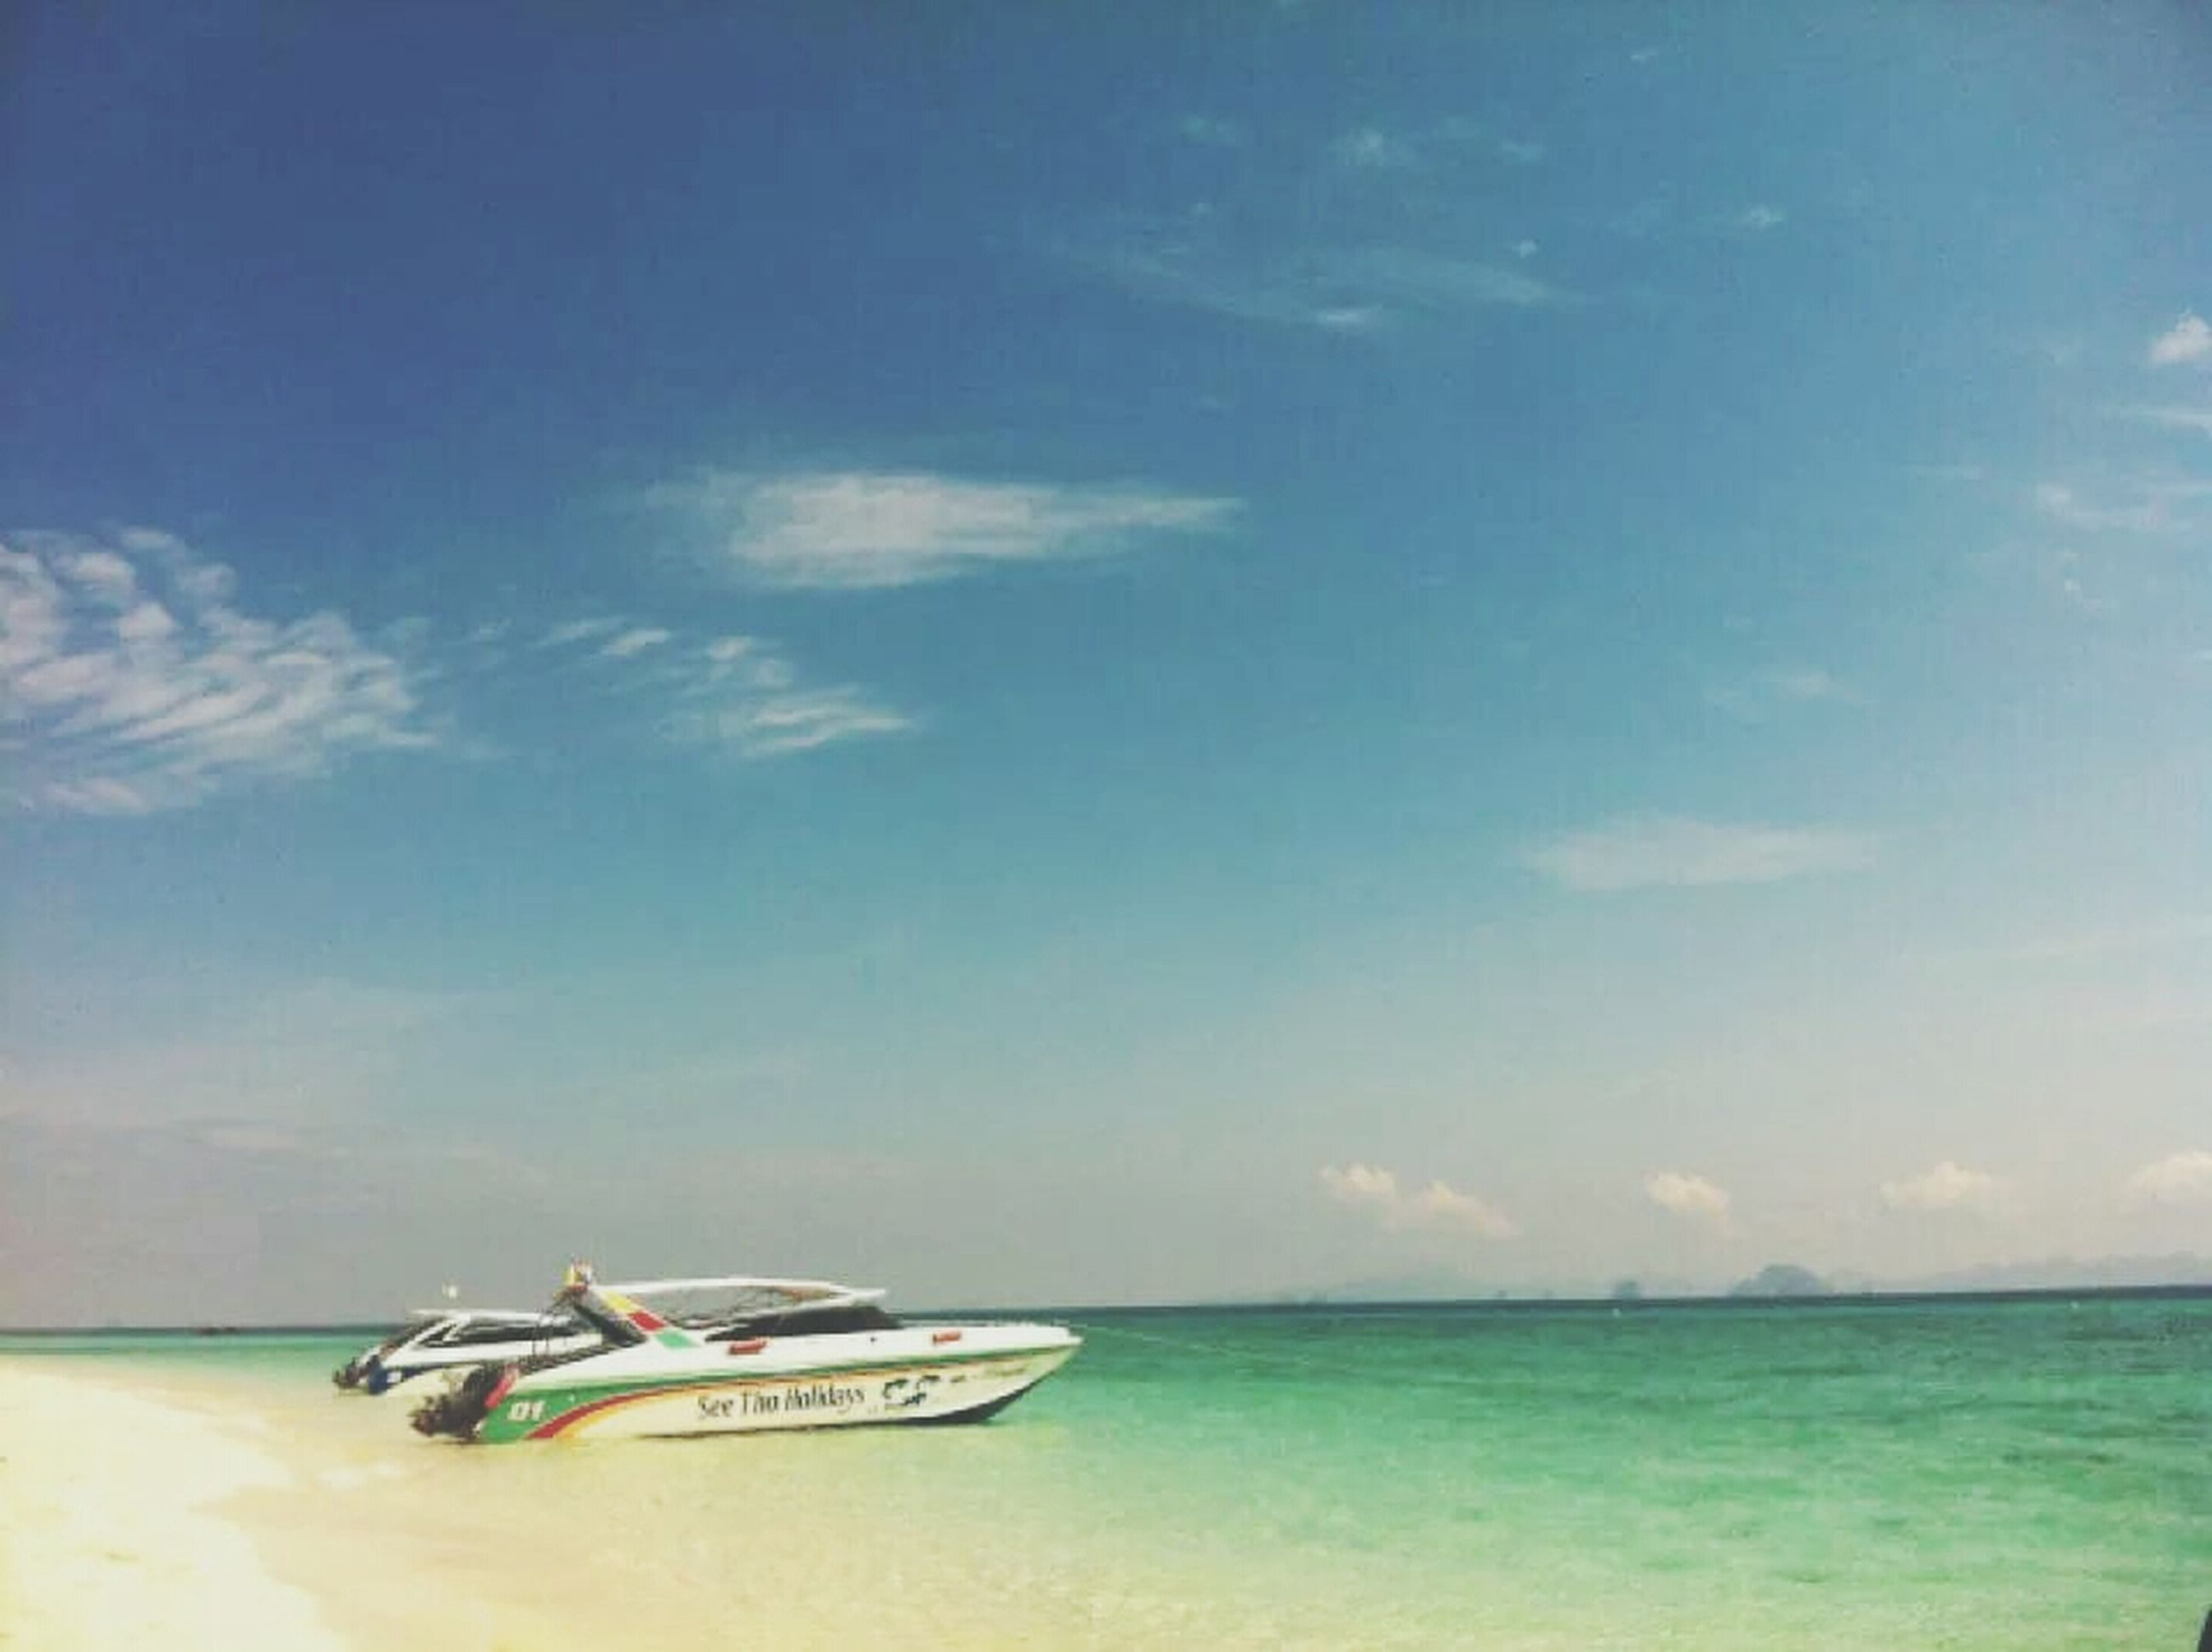 sea, water, transportation, nautical vessel, horizon over water, mode of transport, boat, sky, tranquility, blue, tranquil scene, beach, beauty in nature, nature, scenics, shore, day, outdoors, idyllic, waterfront